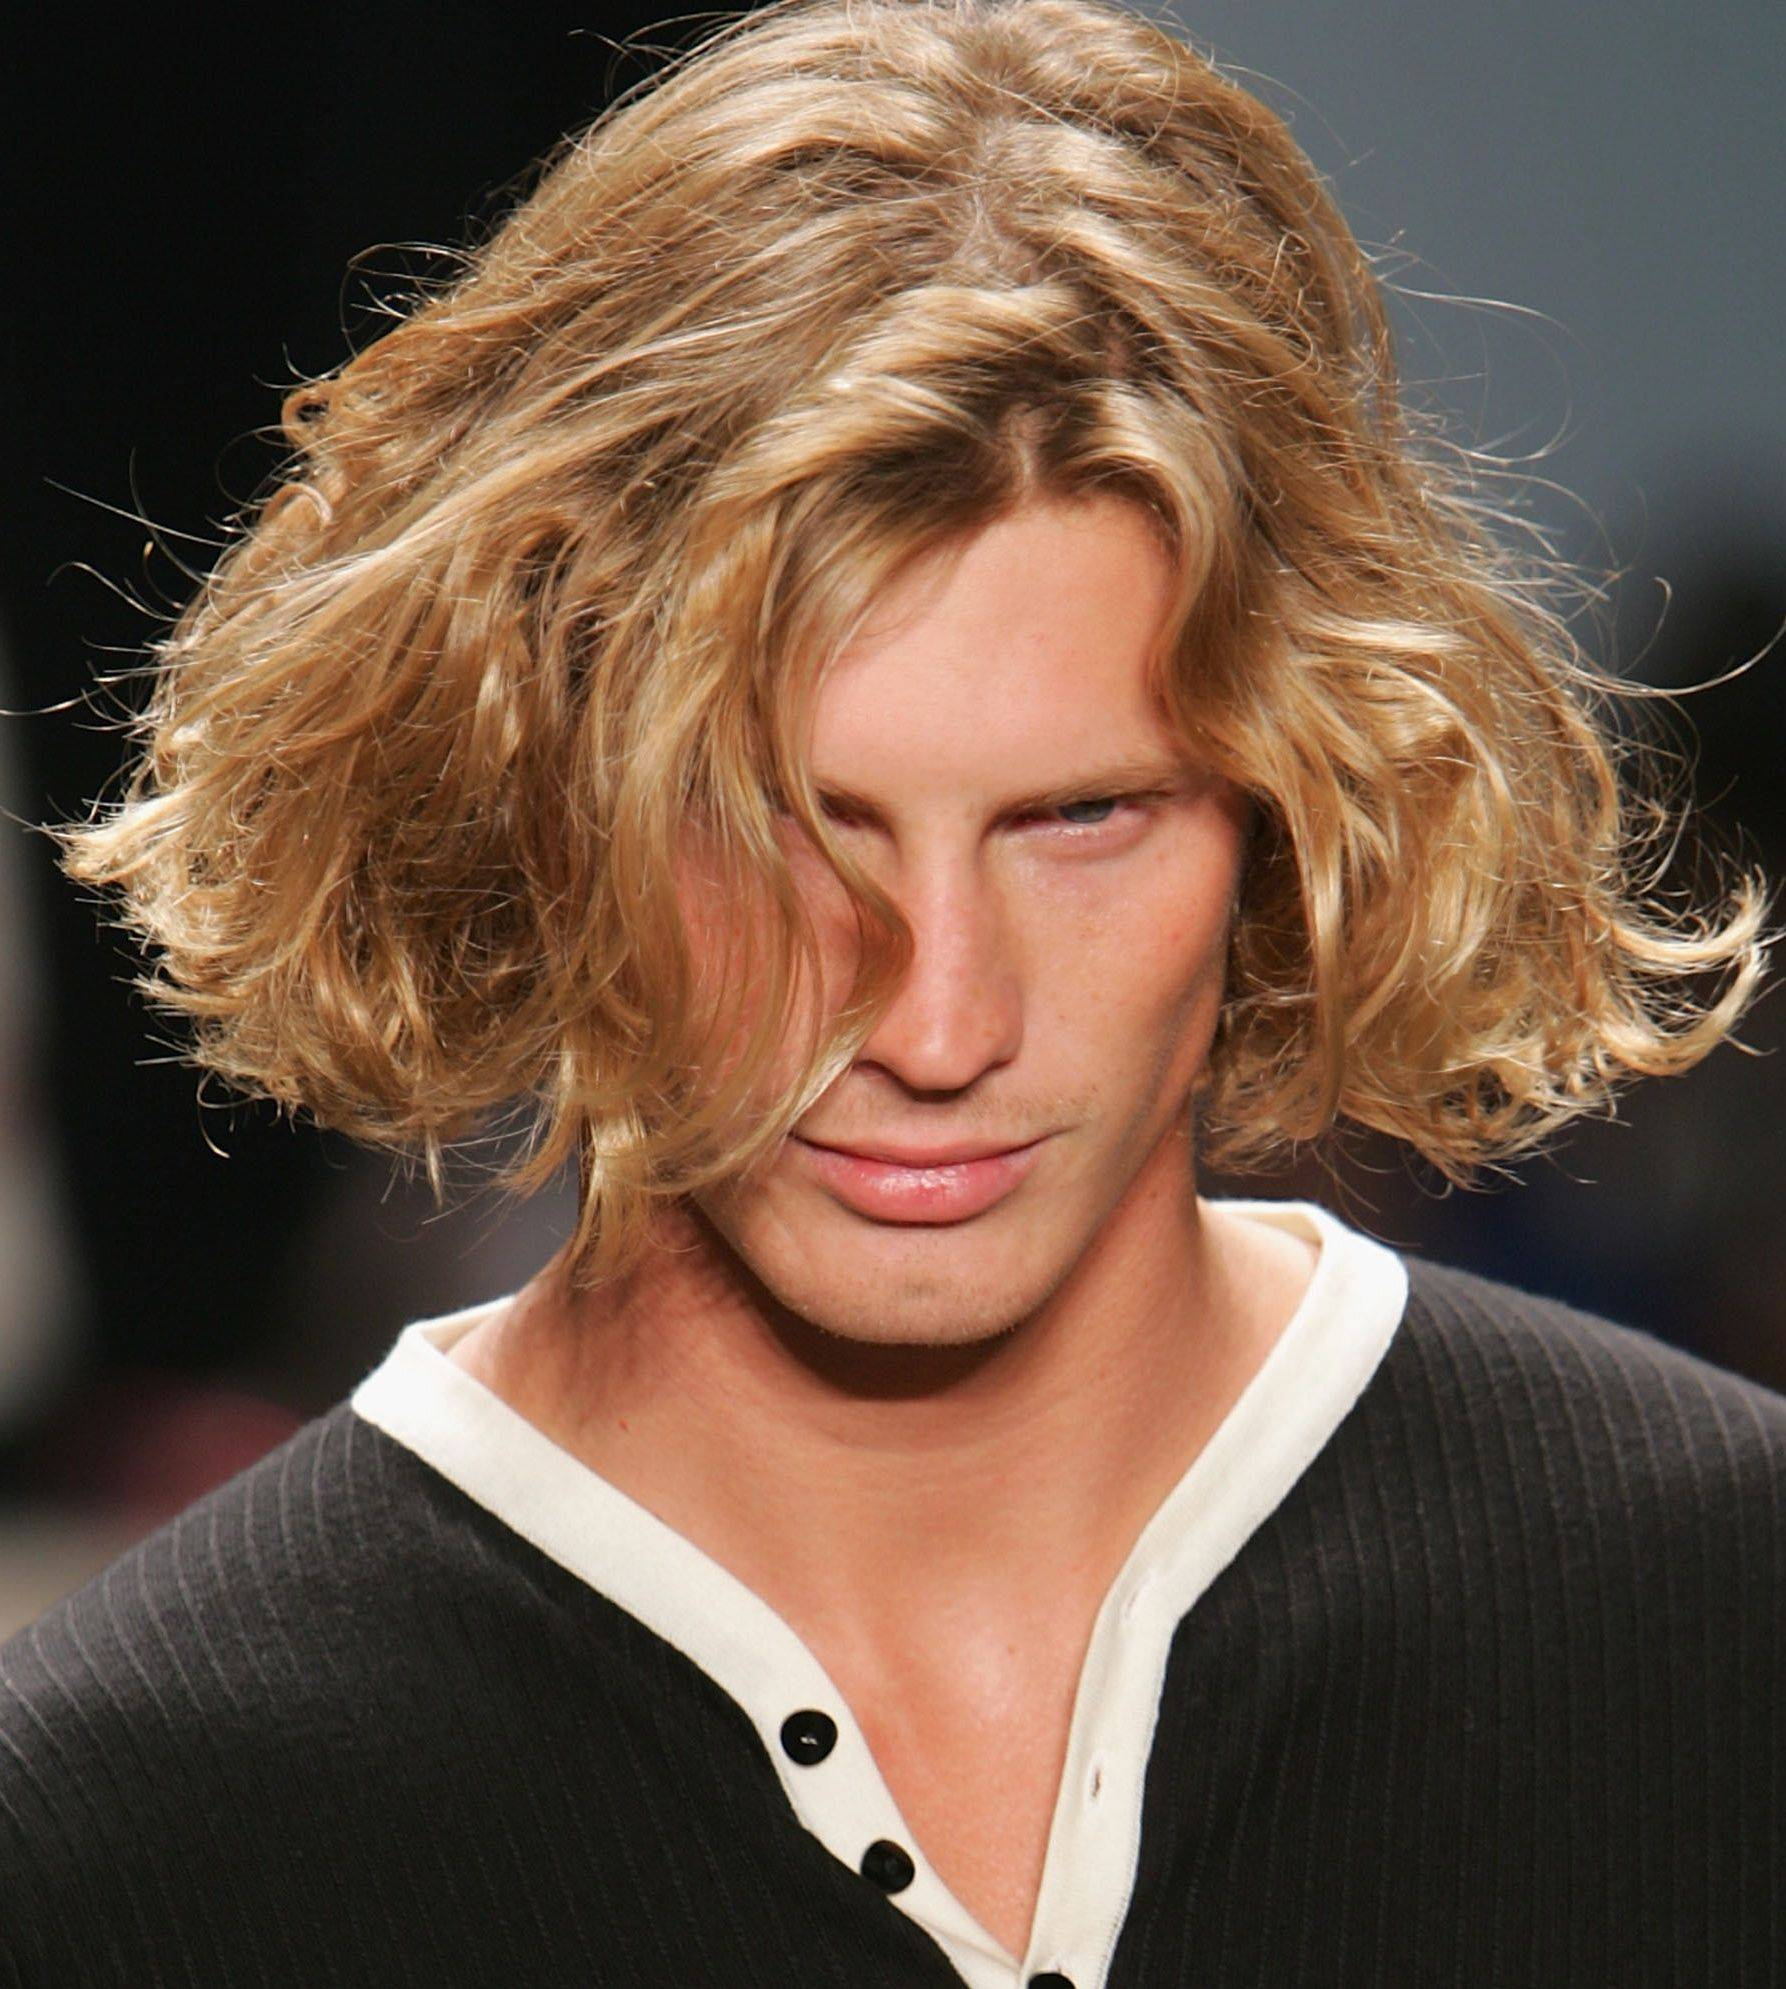 24 Long hairstyles for men. Embrace your inner confidence and let it ...